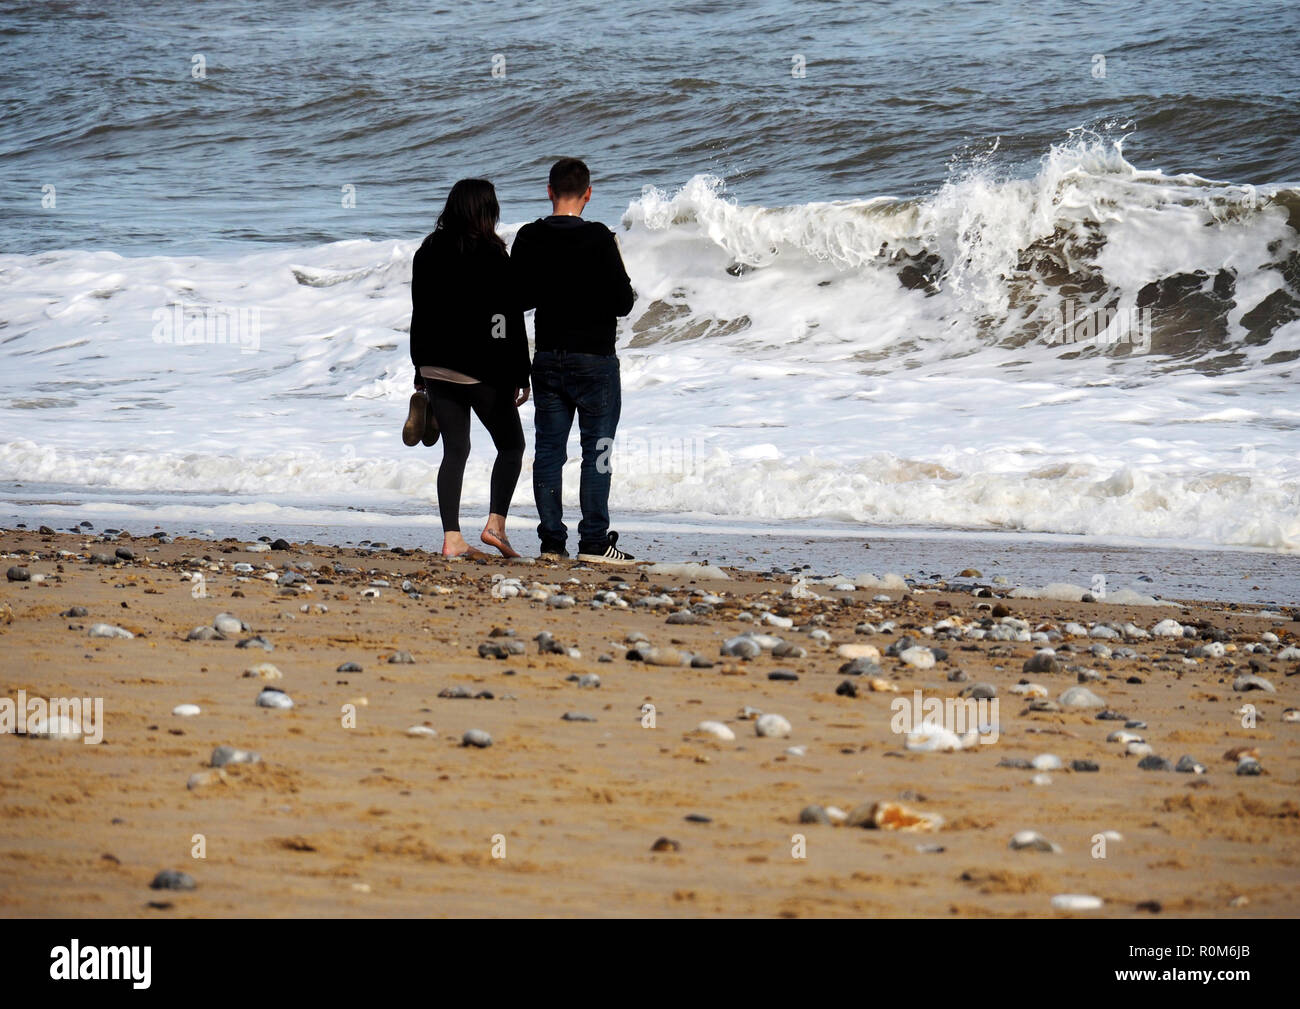 A young couple enjoy each other's company as they walk along a Norfolk beach trying to avoid the wash from the choppy sea's rashing waves. Stock Photo